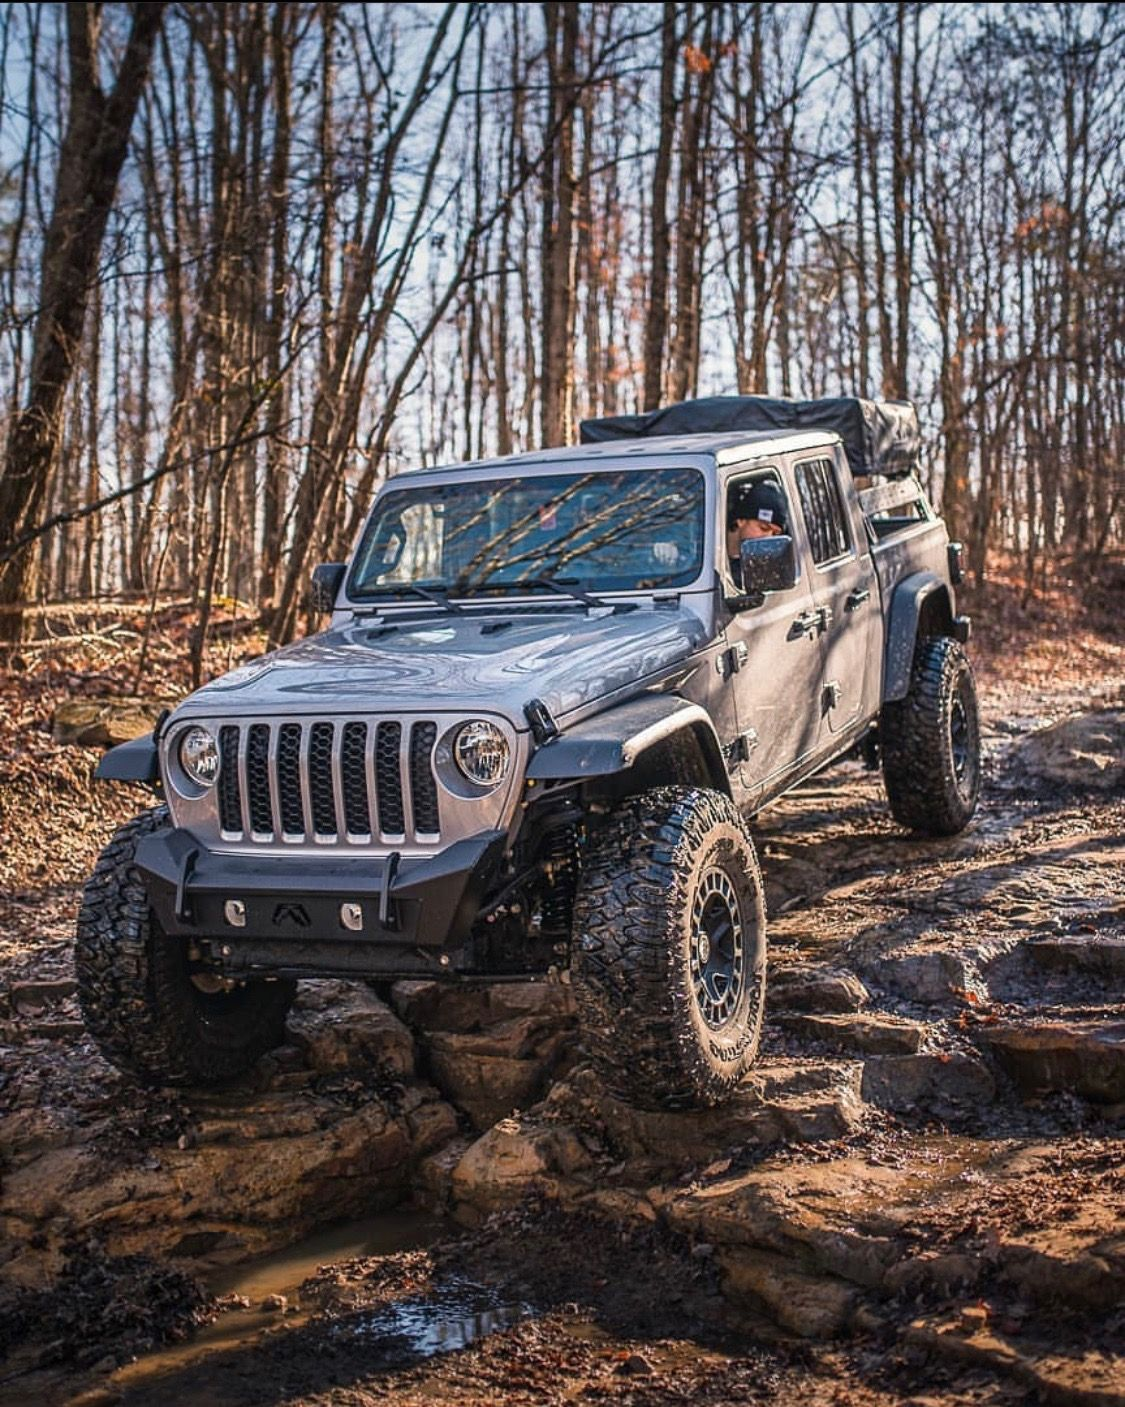 Go Off The Beaten Path Smokymountainoverland Unraveladventure 2020 Lifted Jeep Gladiator Offroad Jeep In 2020 Jeep Gladiator Lifted Jeep Jeep